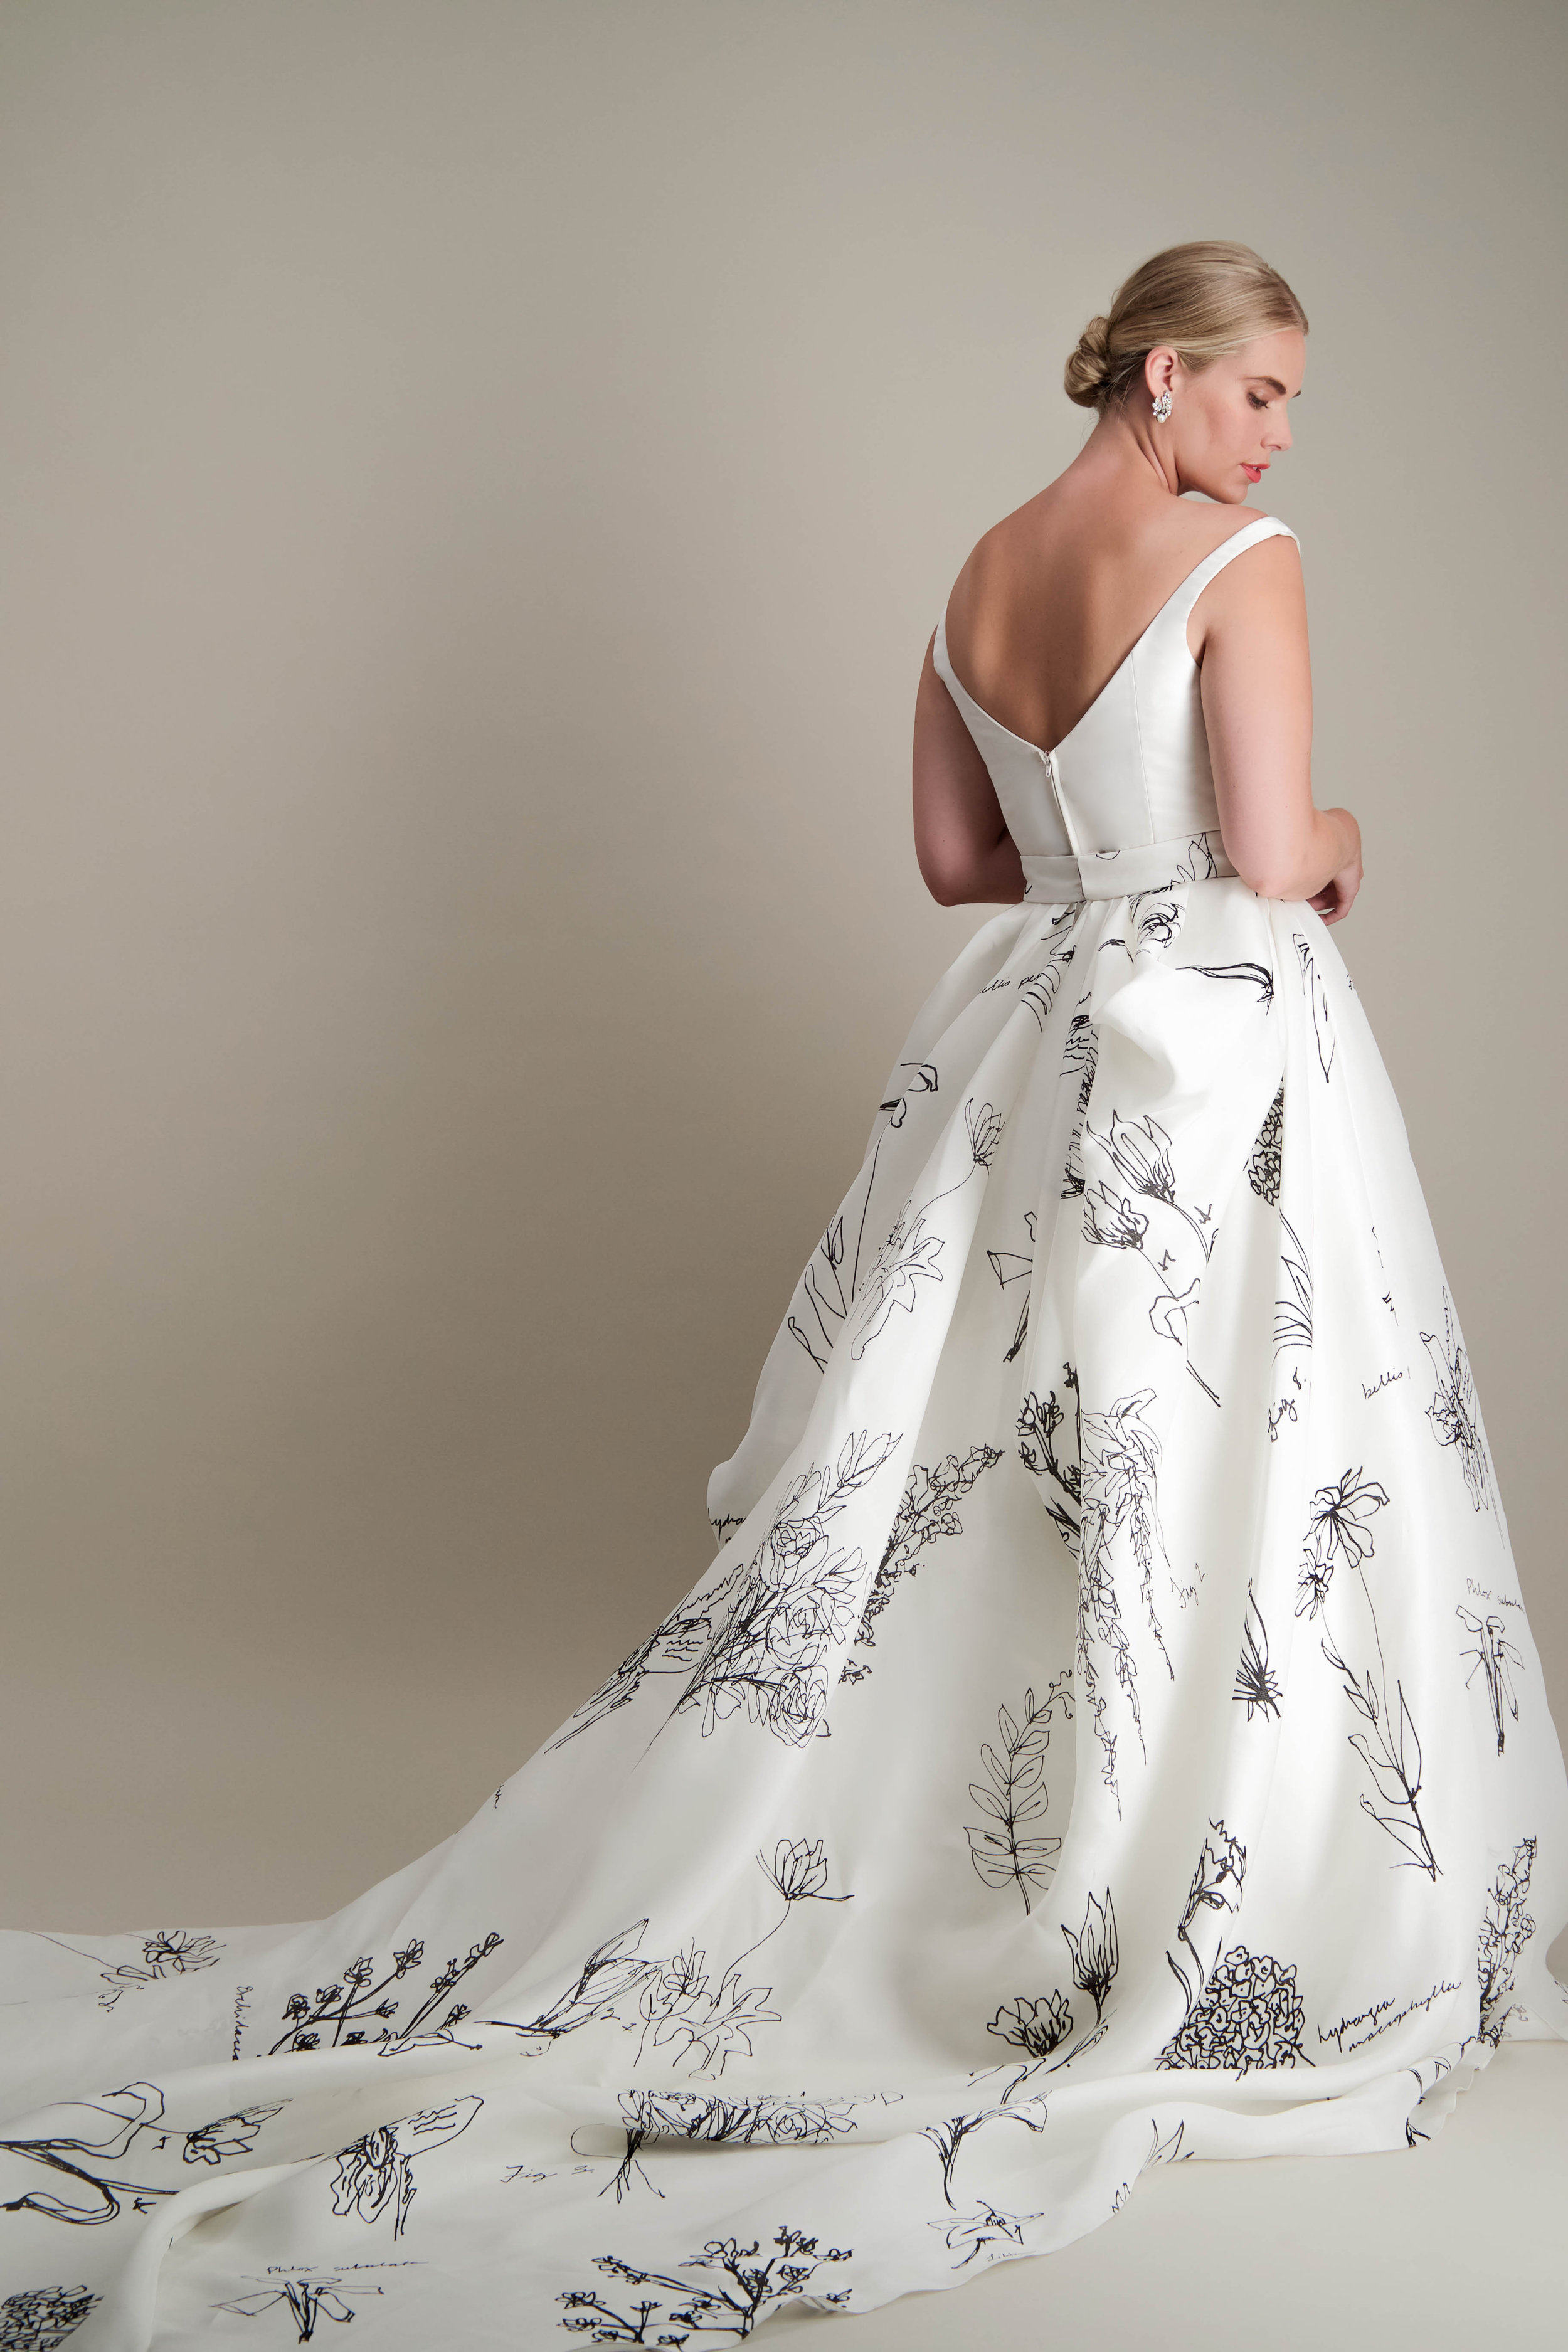 anthorium-skirt-ball-gown-printed-black-and-white-gown-5.jpg